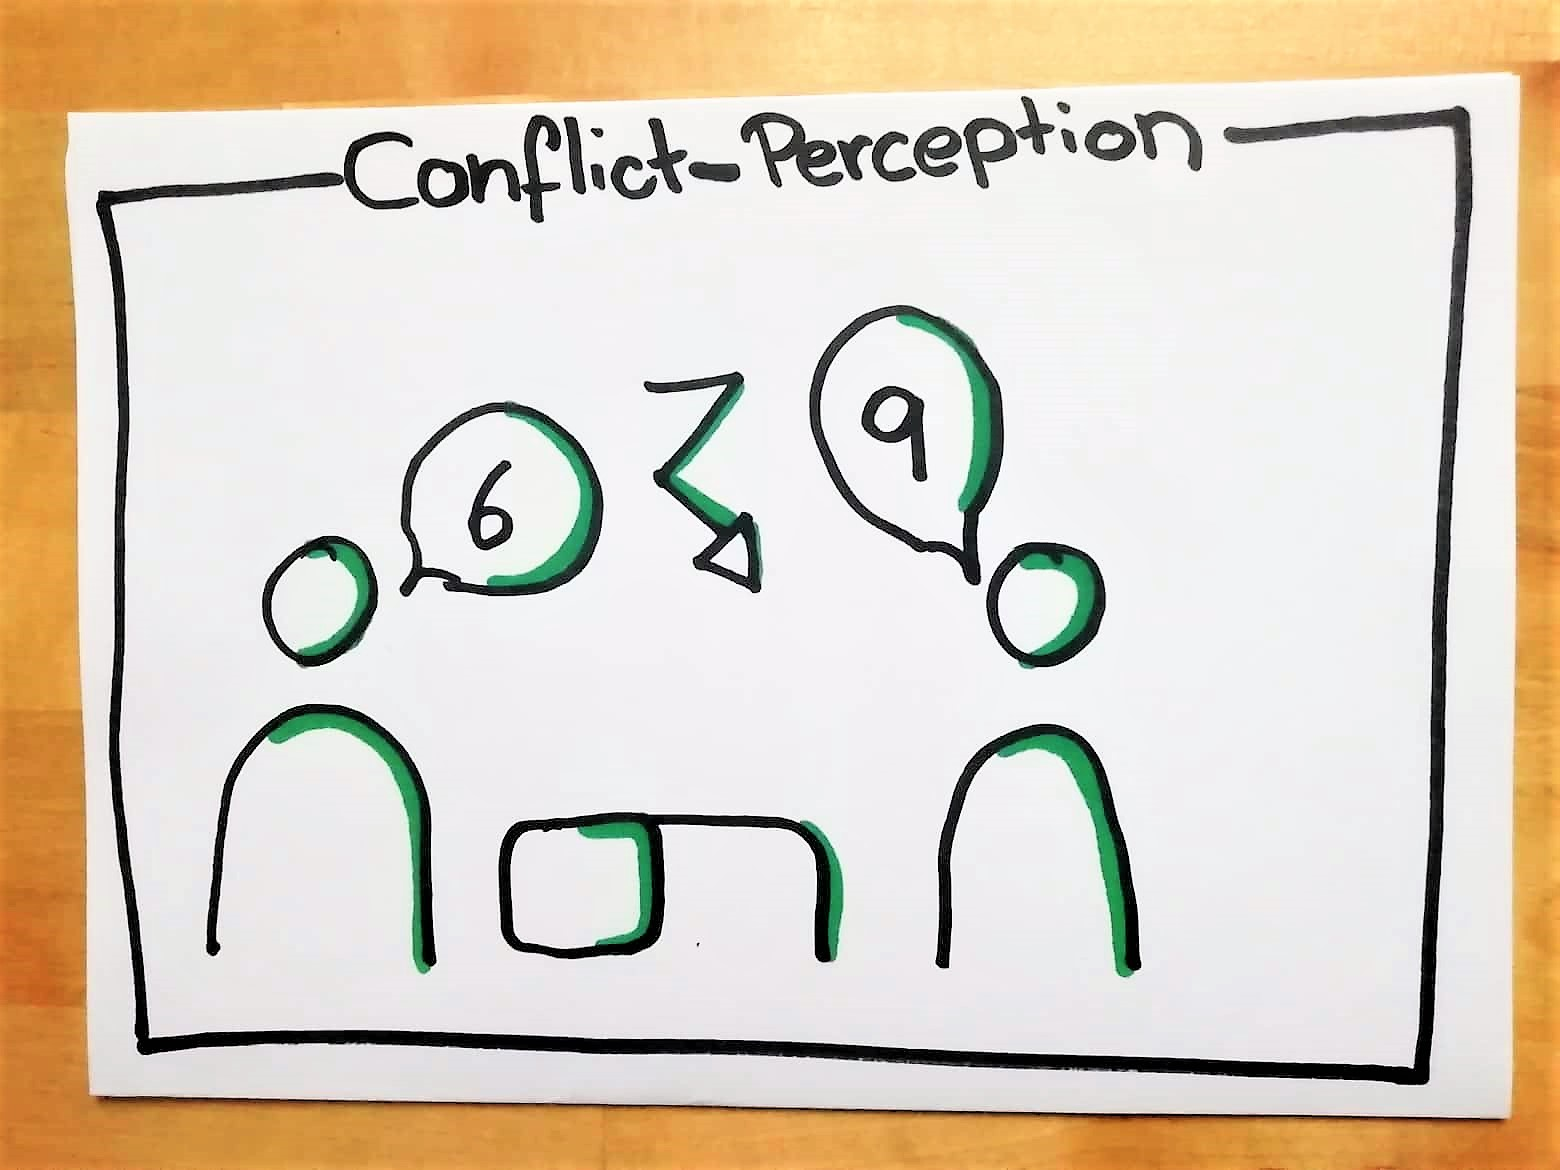 Conflict Perception.jpg